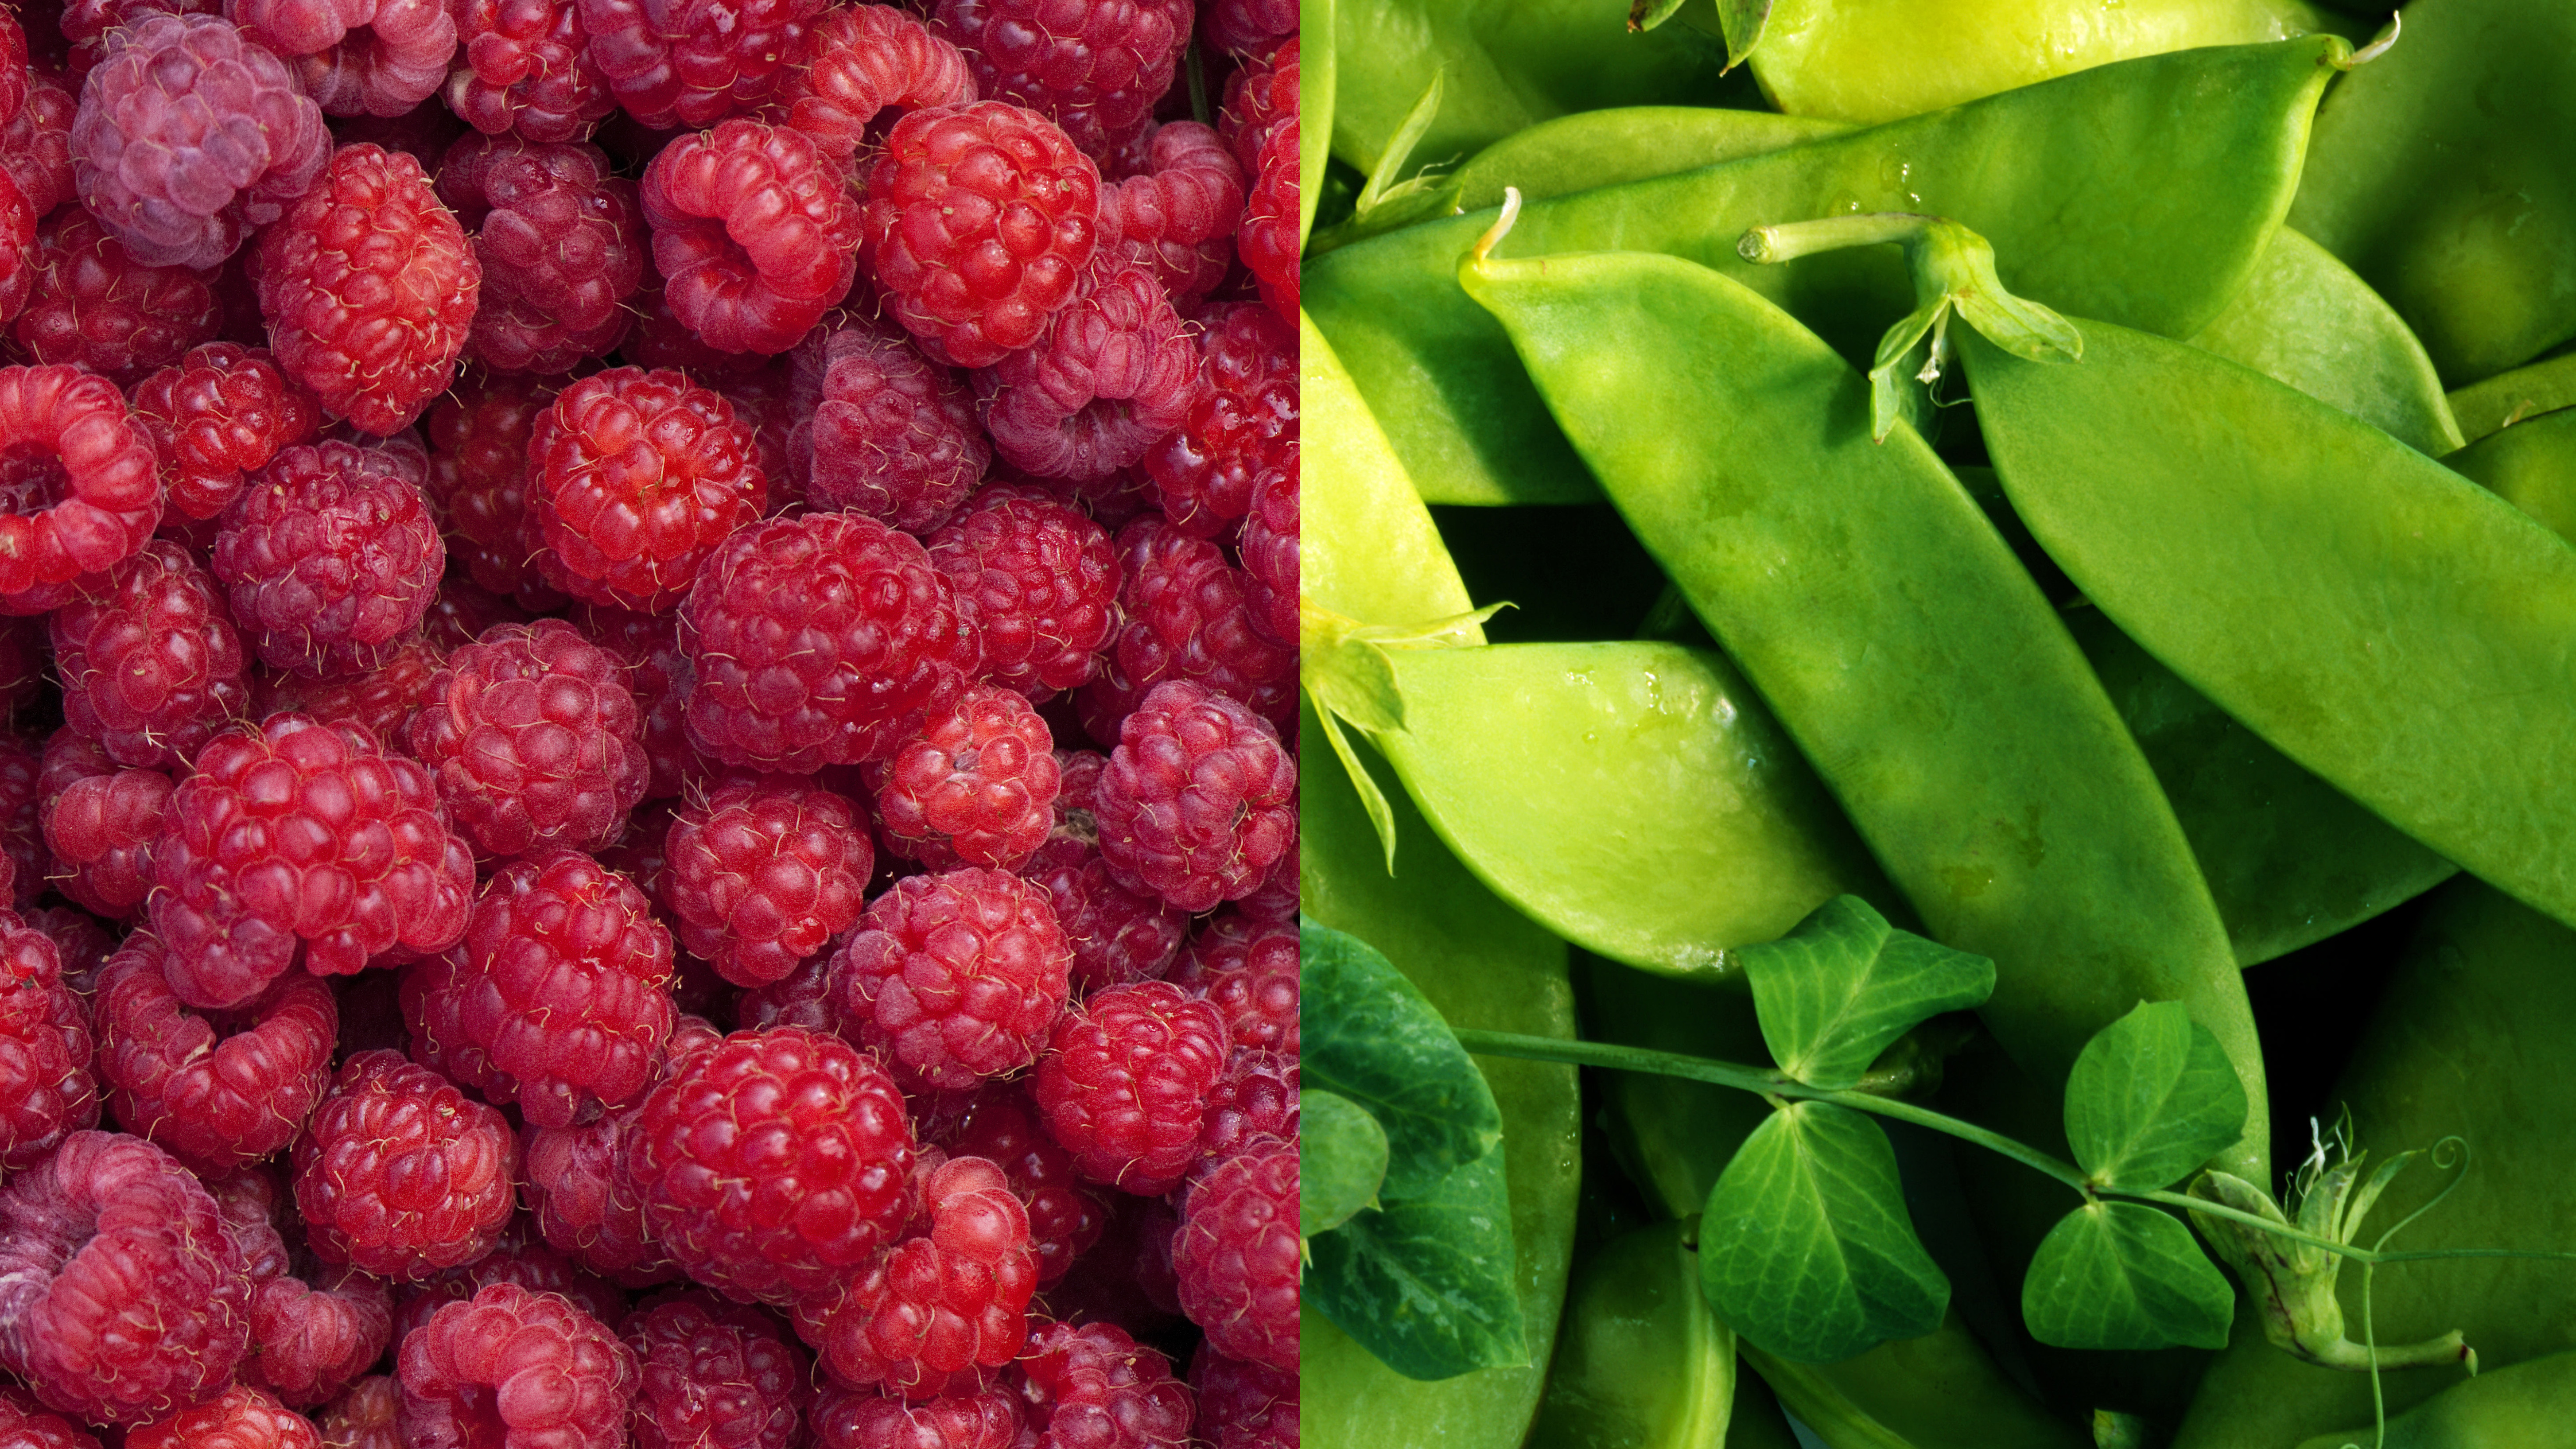 File photo of raspberries and snow peas. GETTY IMAGES.